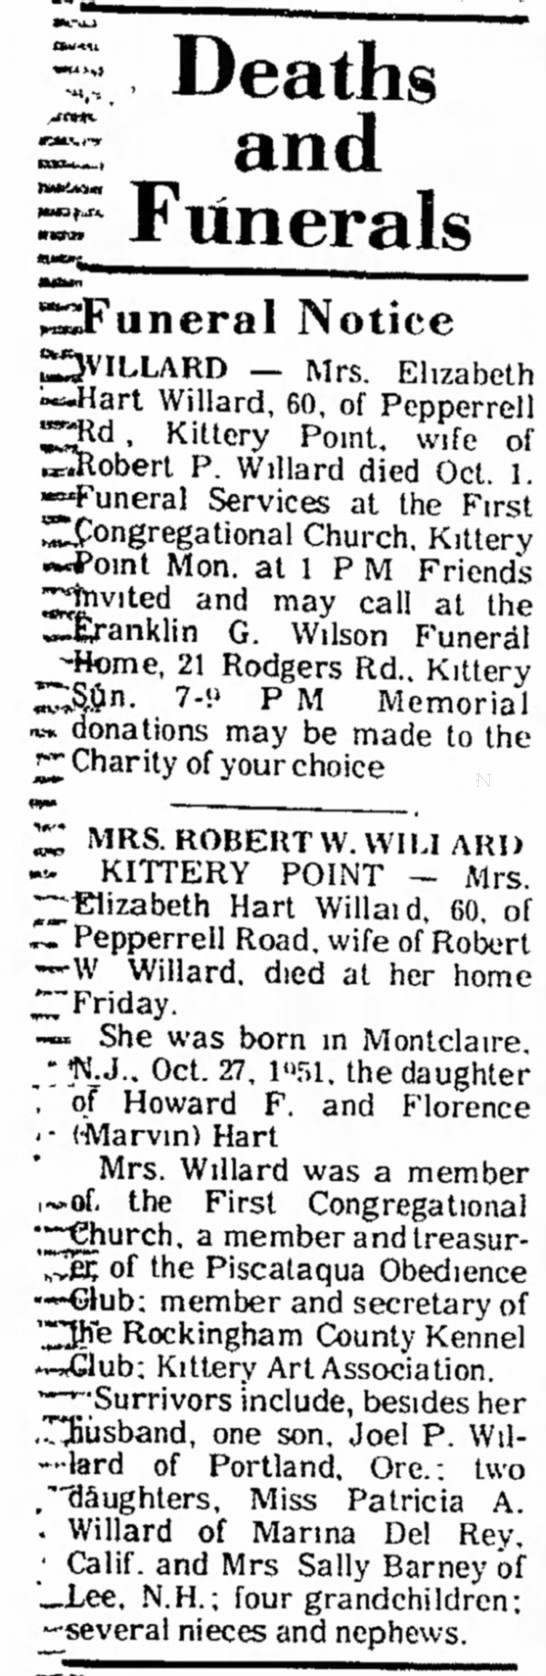 Obituary of Elizabeth Hart Willard The Portsmouth Herald Saturday - Oct 2, 1976    page 3